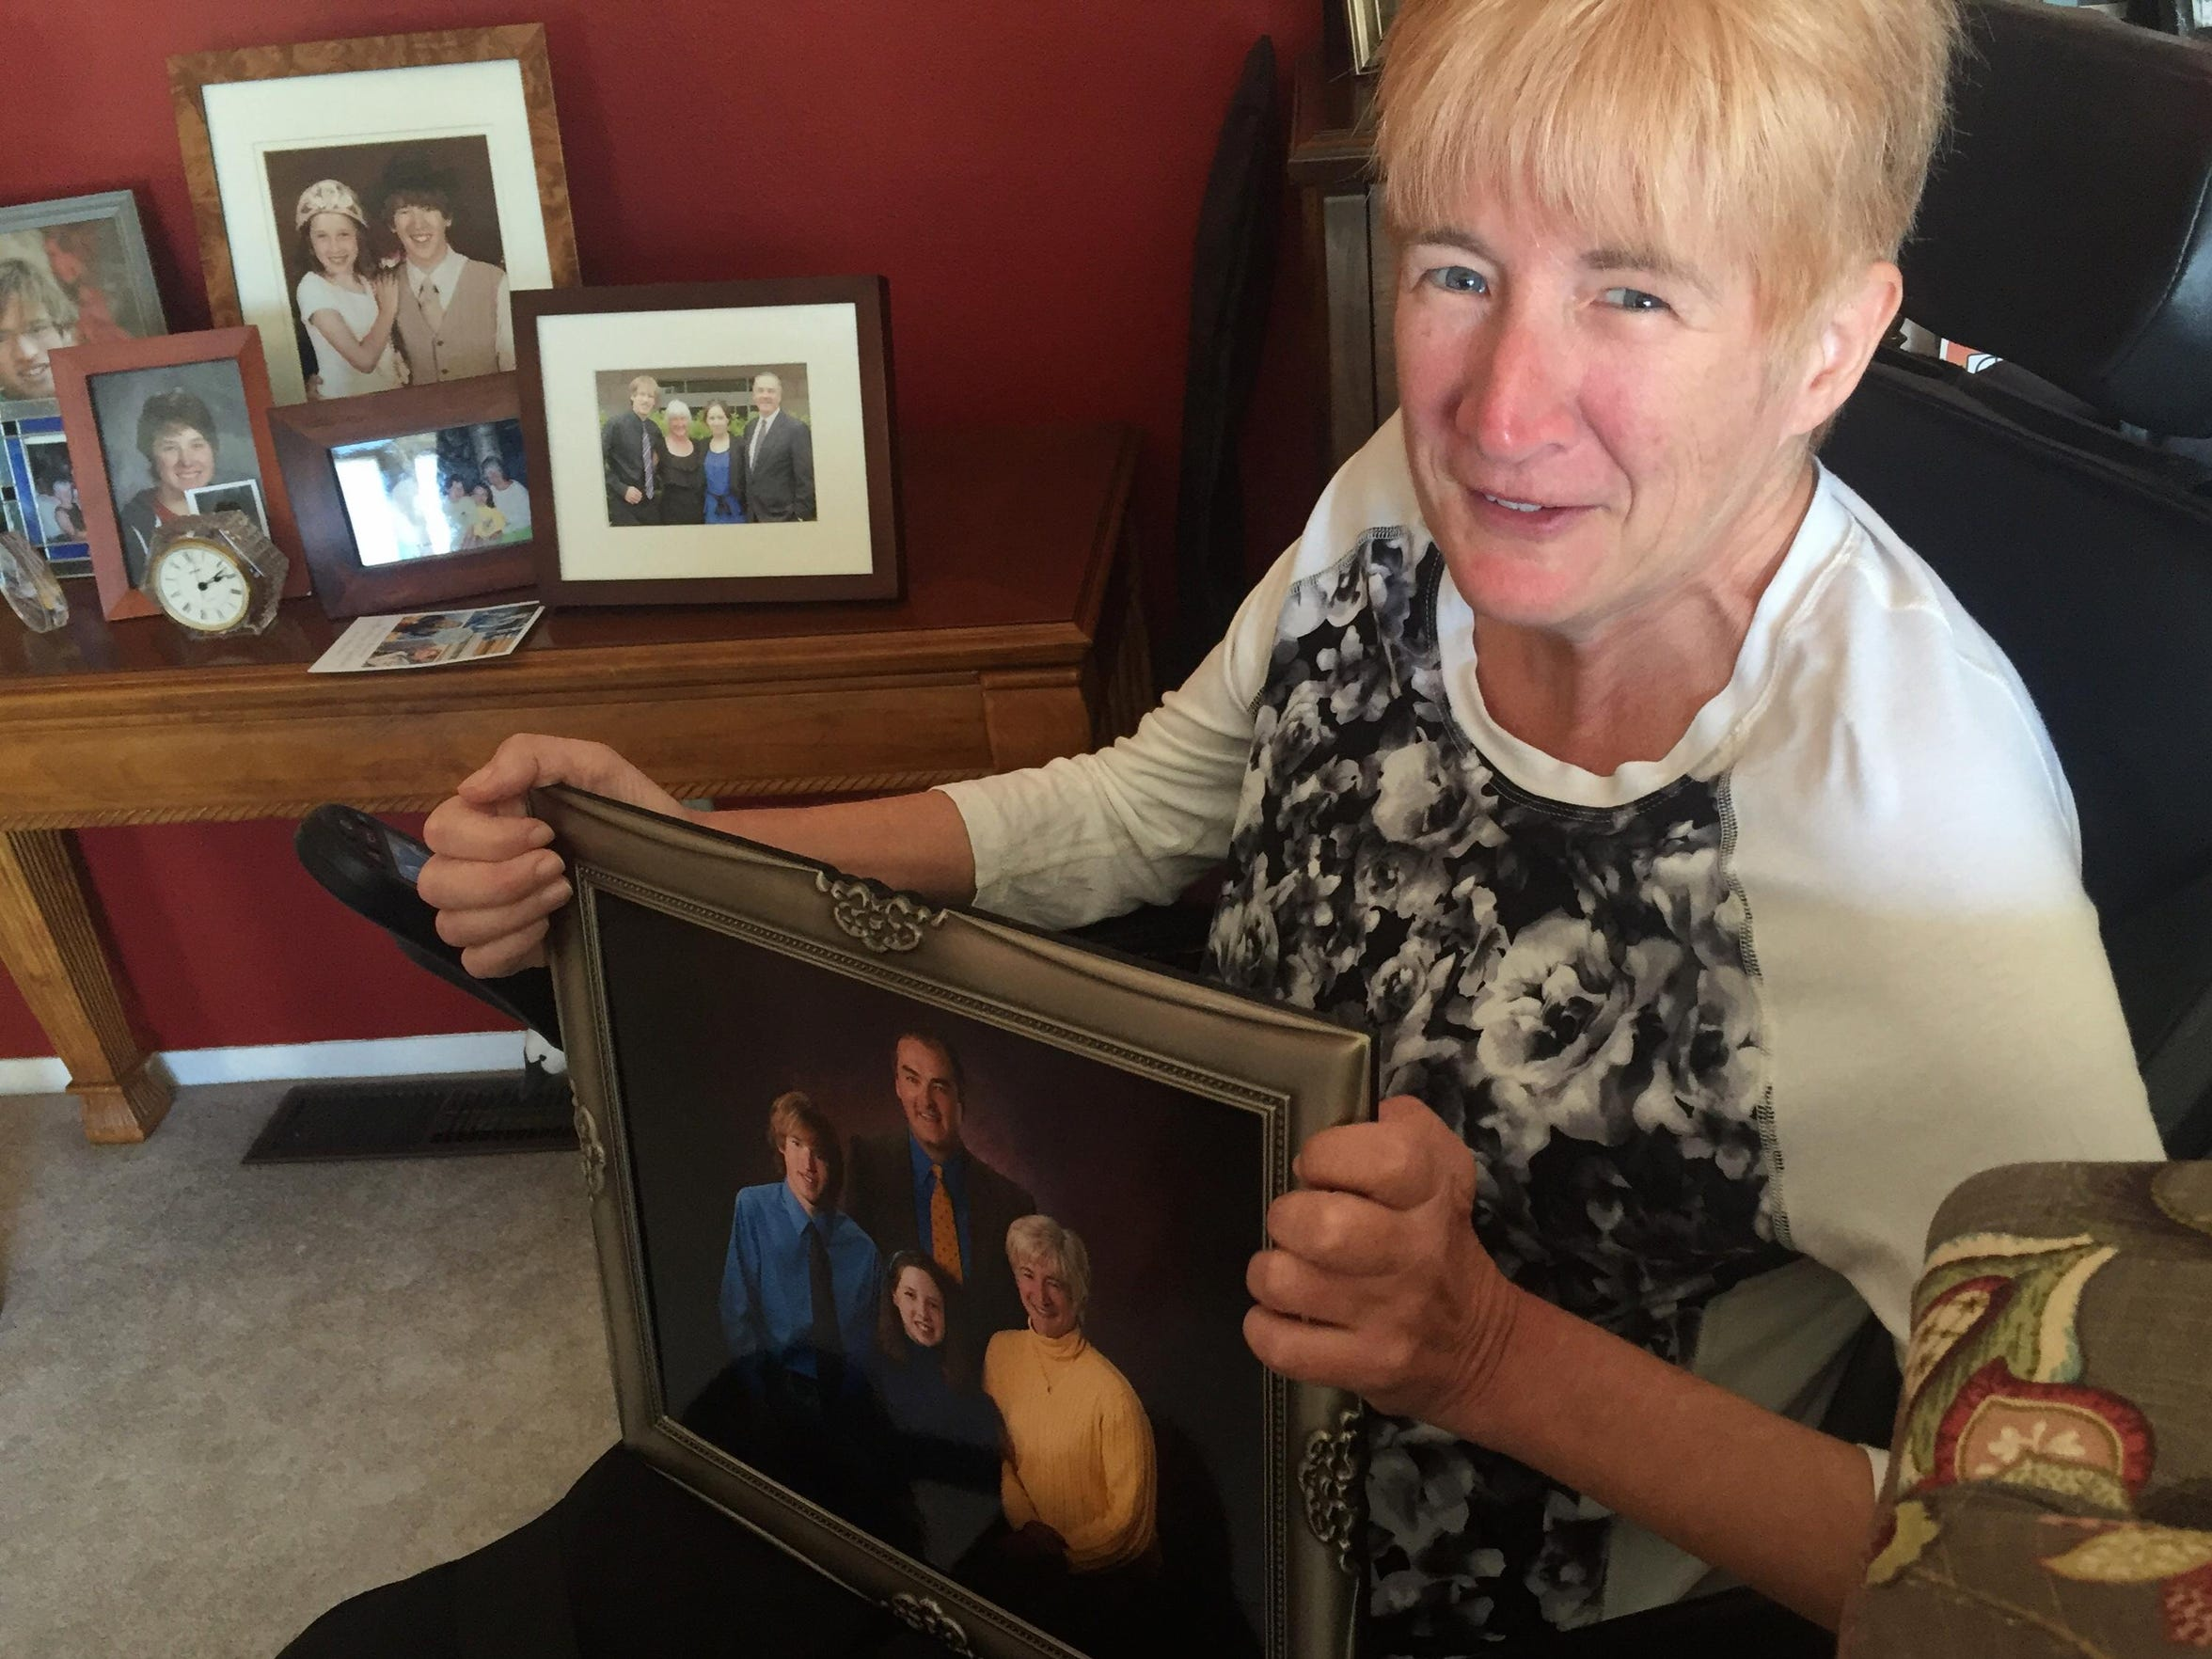 Pam Hillery holds a family portrait in her Havre home. She said she worries about what will become of her family when she's gone but also knows they have strong, loving relationships to sustain them.